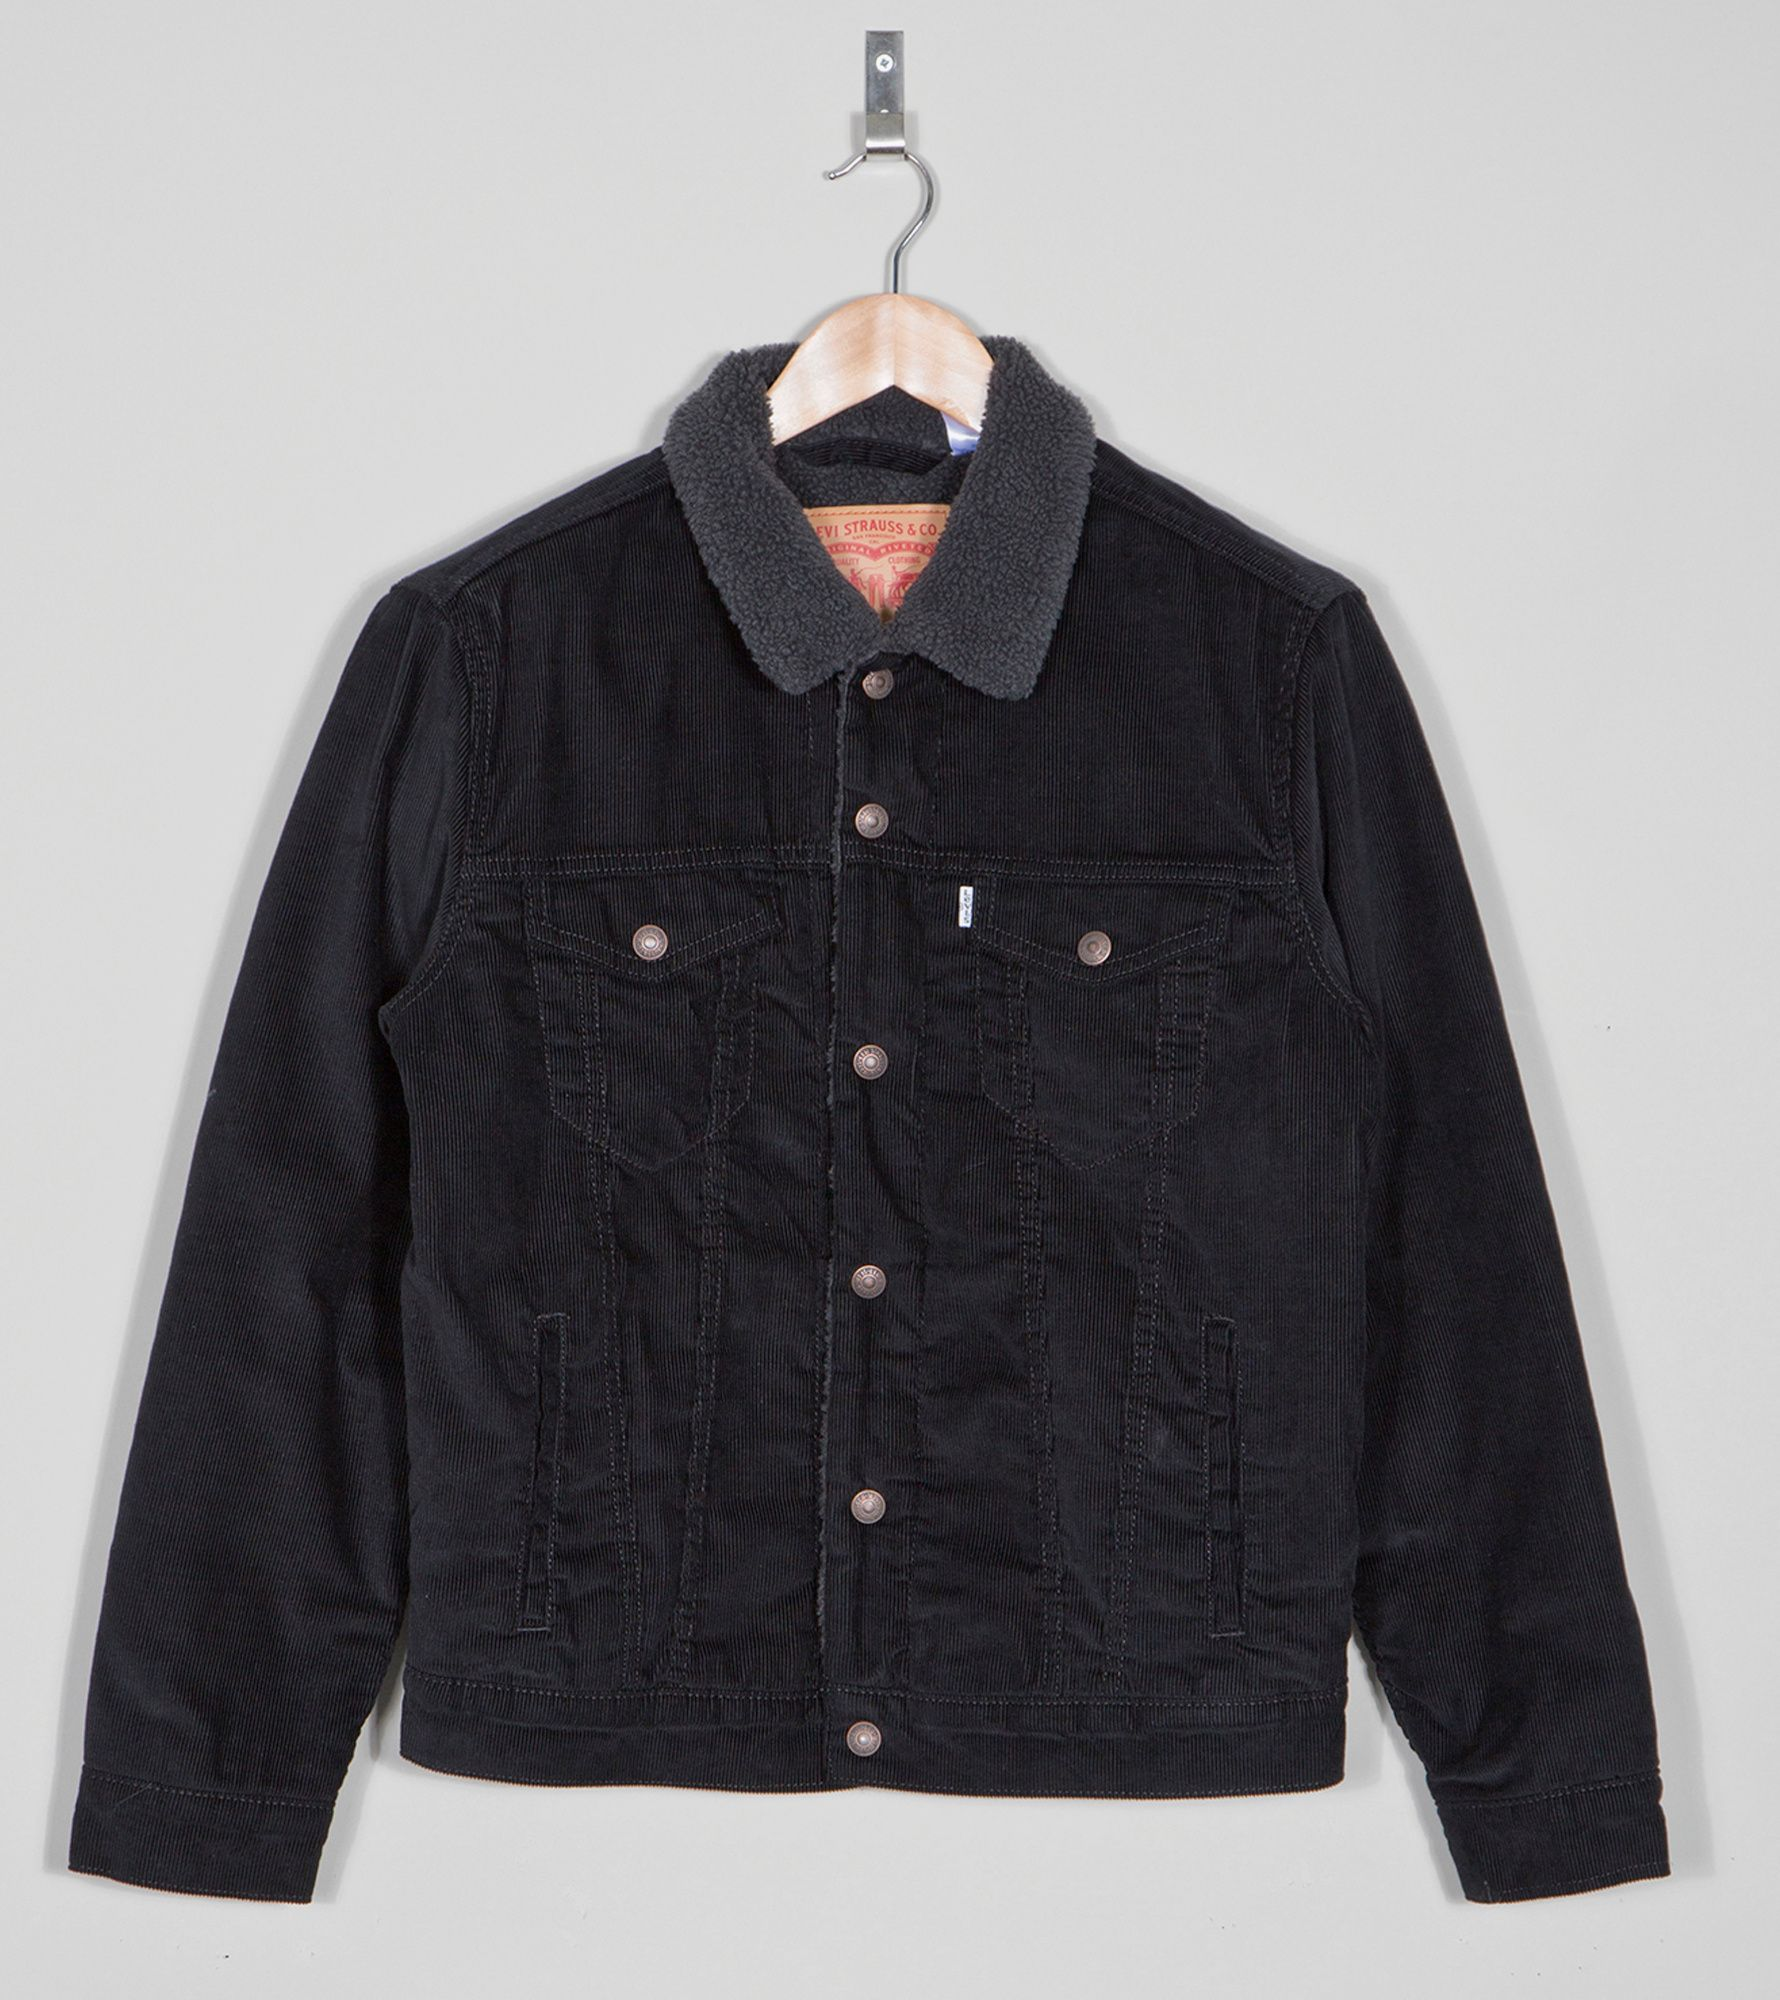 Levis Cord Sherpa Jacket Size